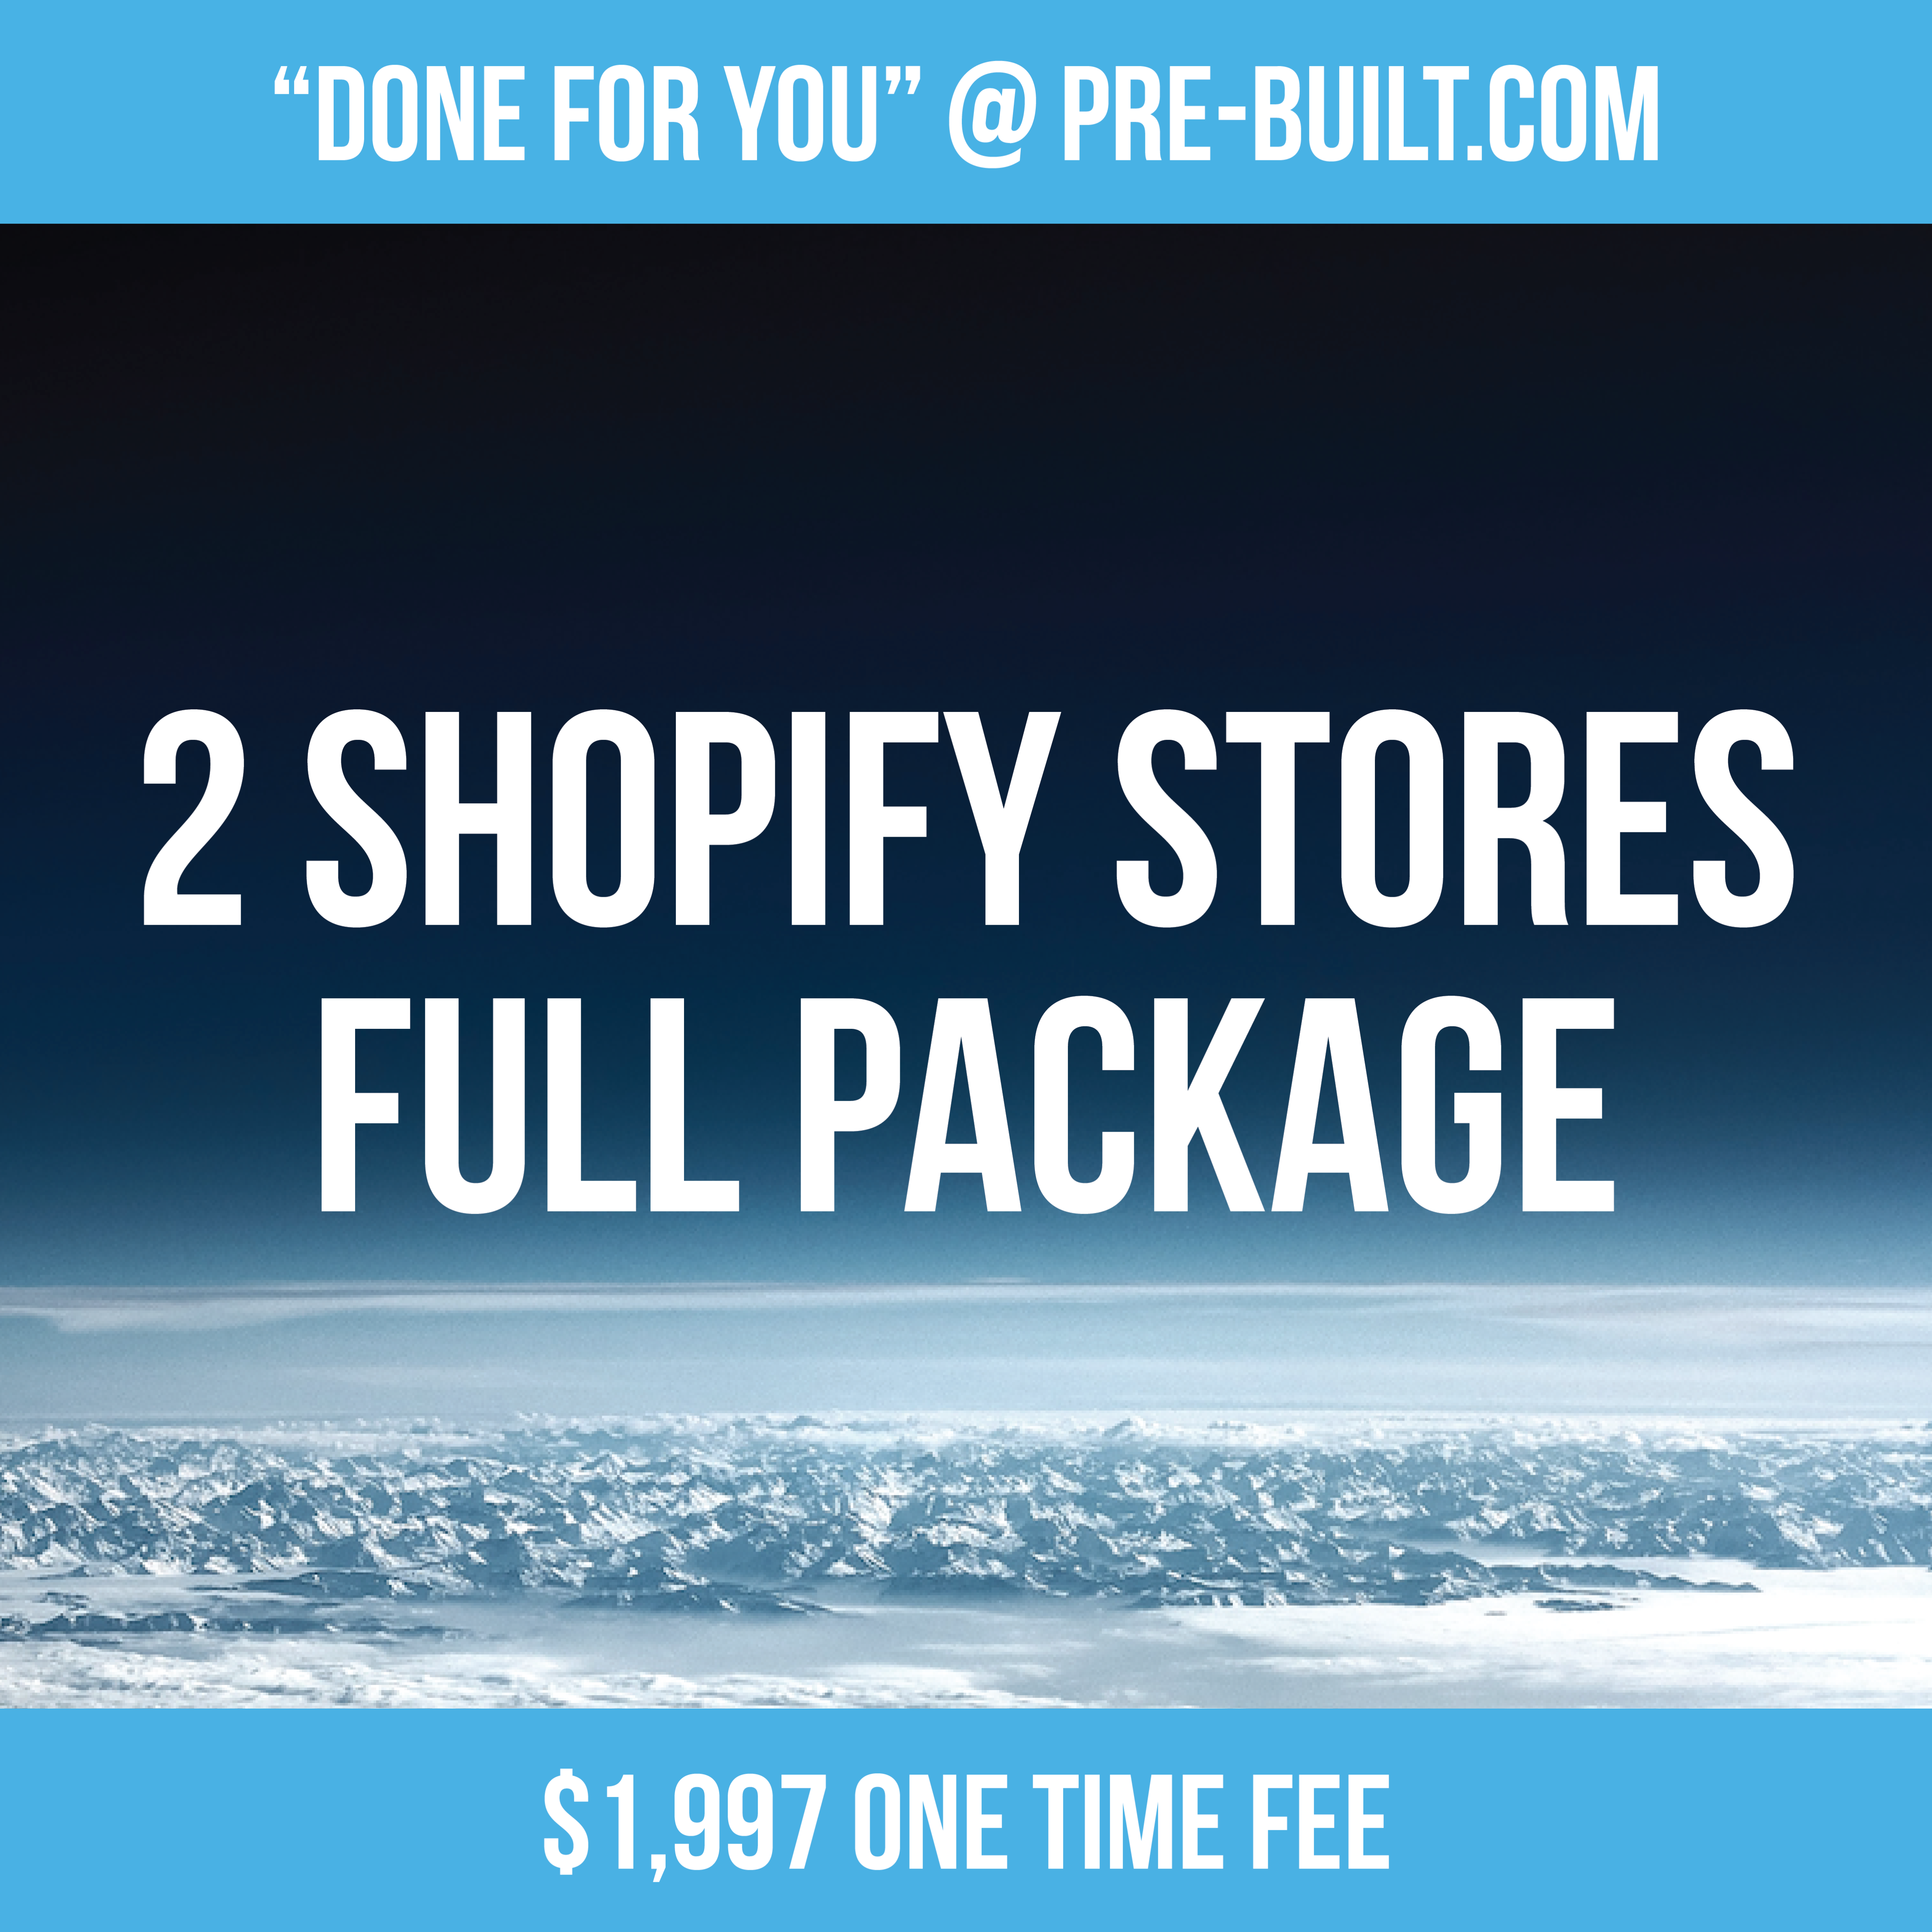 2 SHOPIFY STORES